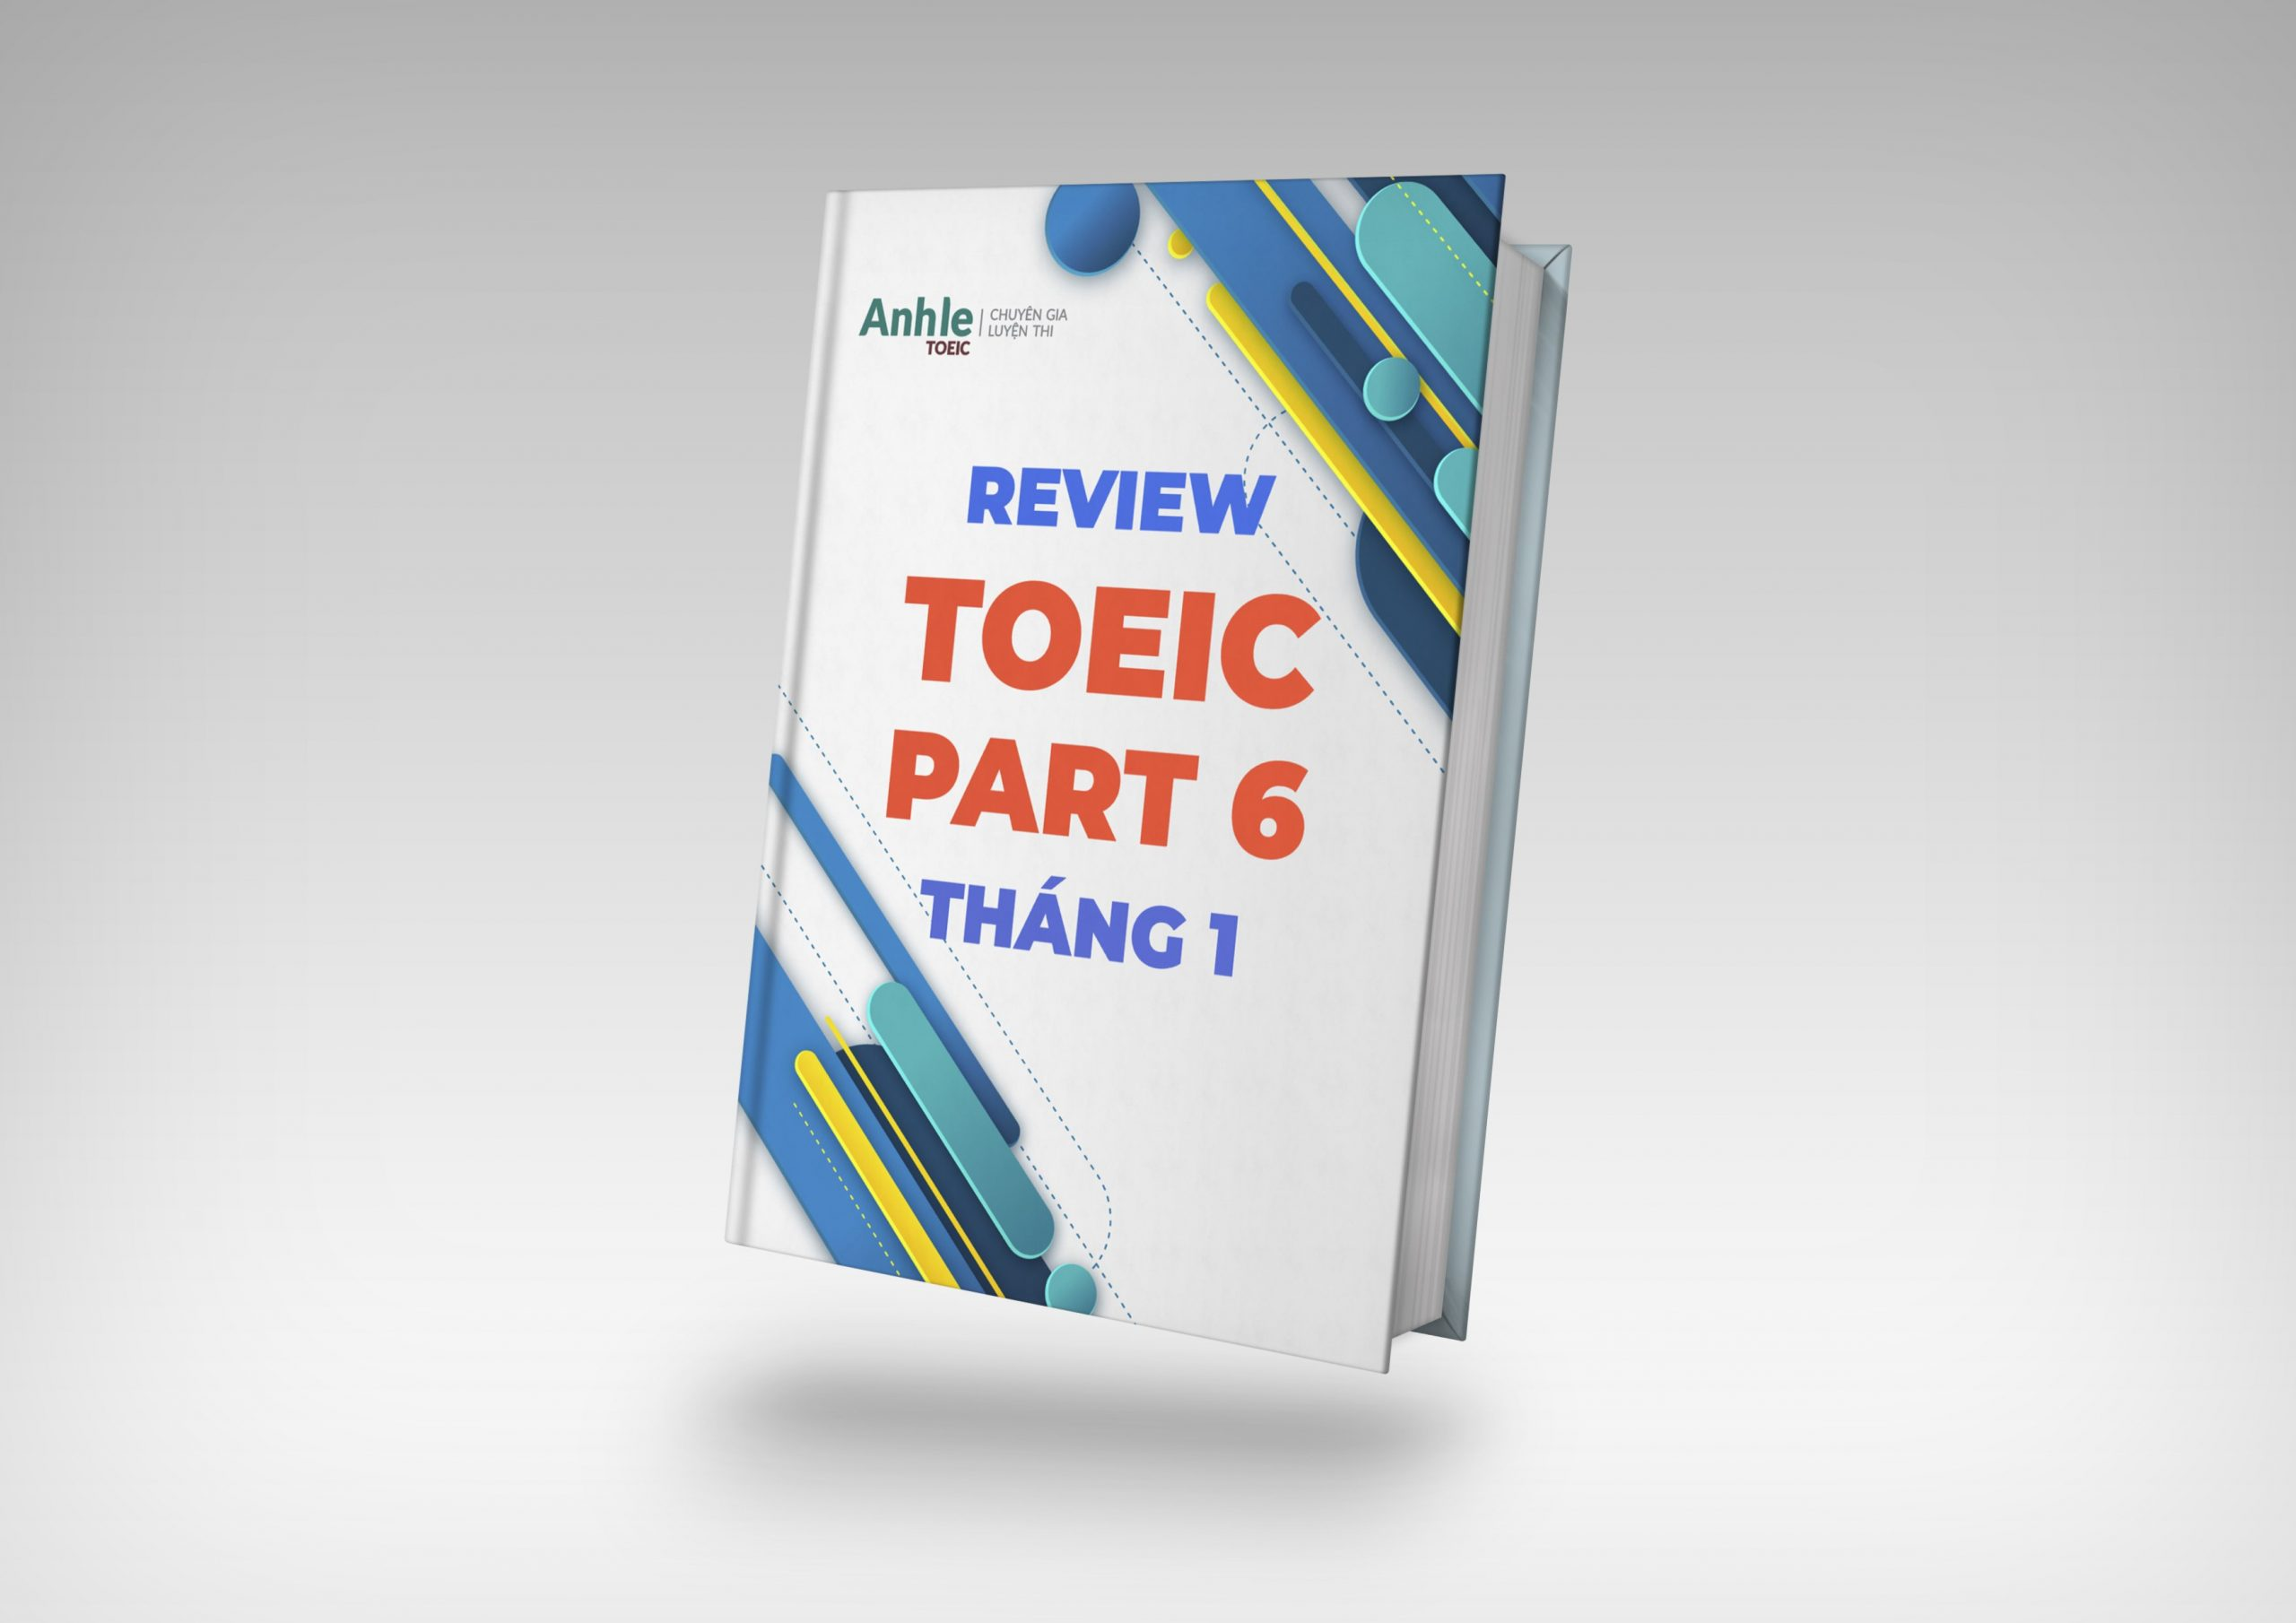 review toeic part 6